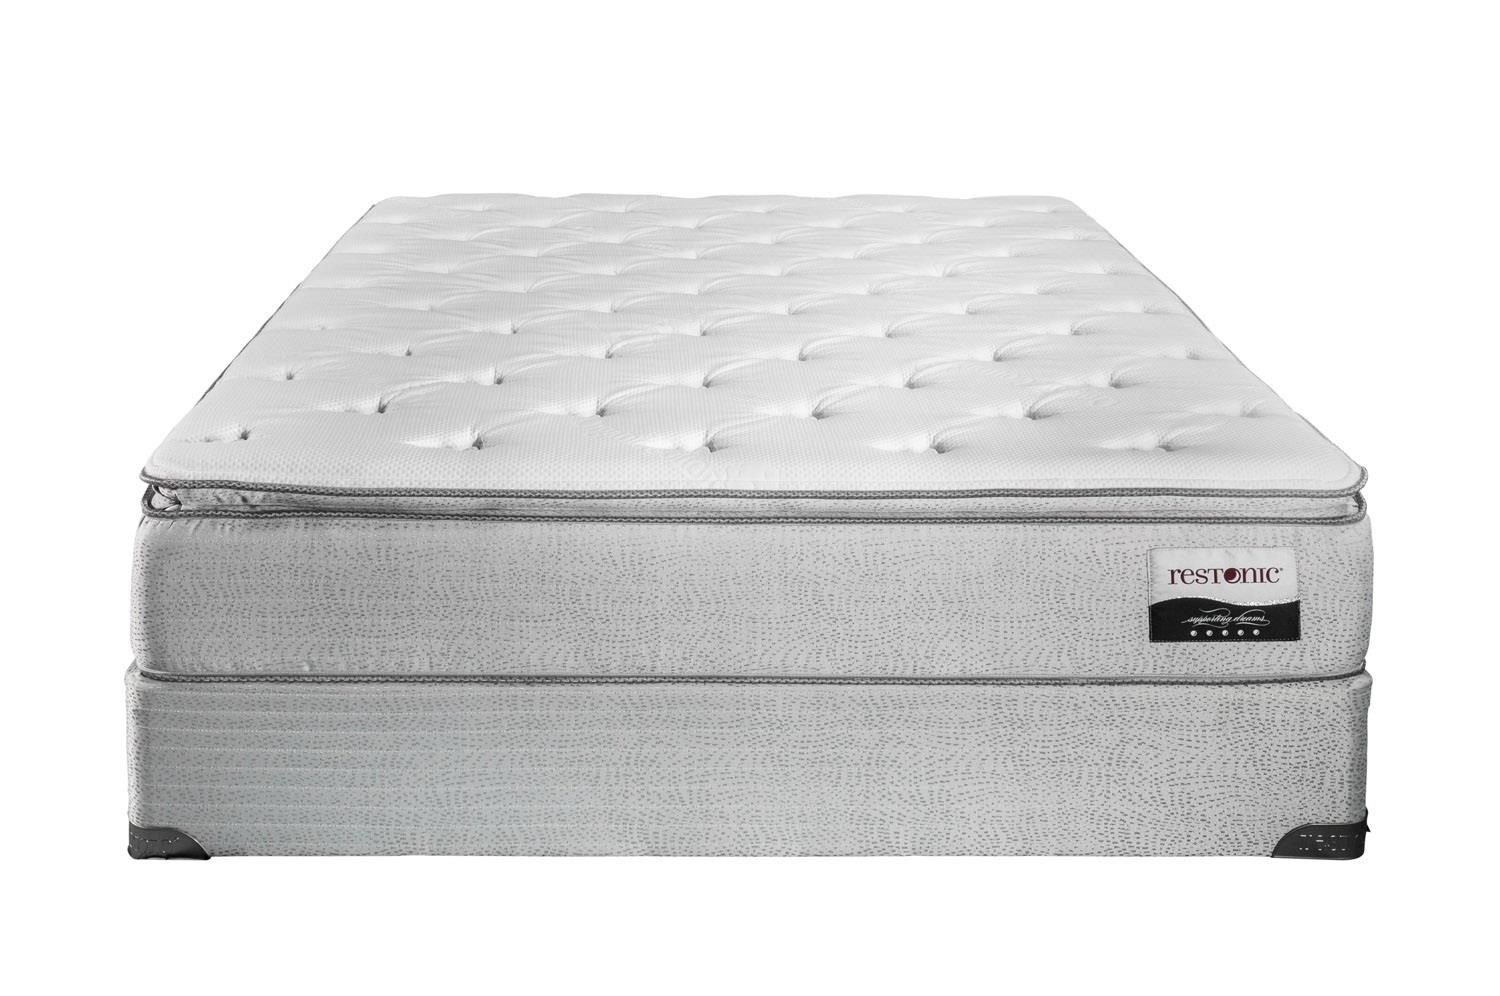 mattress shown may not represent size indicated